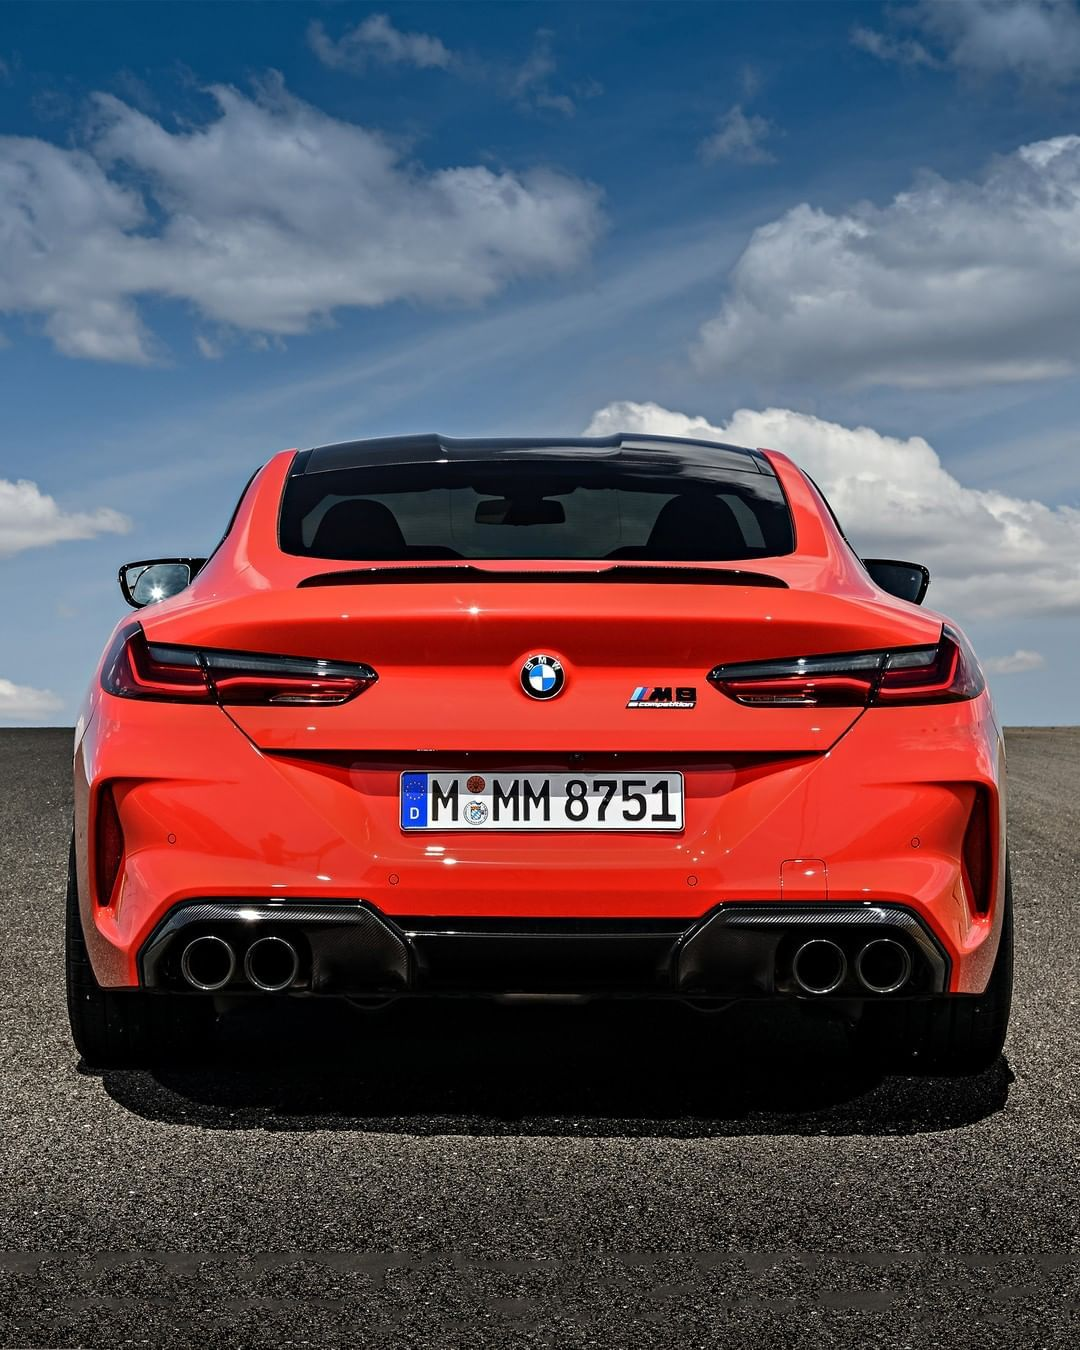 Bmw On Instagram Back On Track The First Ever Bmw M8 Competition Coupe Them8 Bmw M8 Bmwm Bmw M8 Competition Coupe Fuel Co Bmw Convertible Bmw Coupe Bmw manhart mh8 600 2019 4k 2